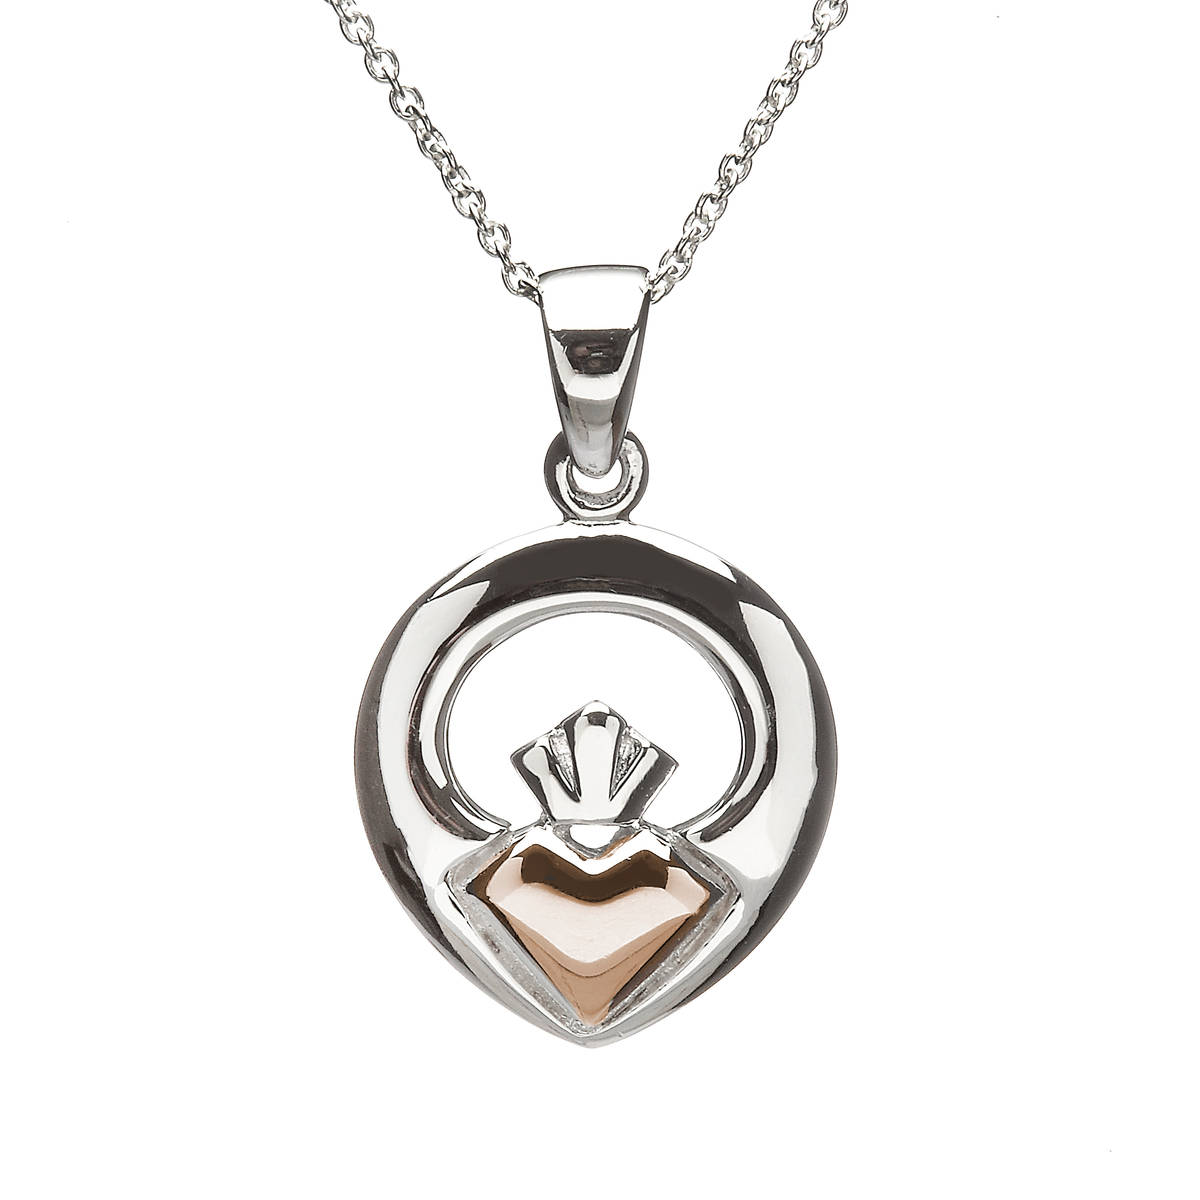 House of Lor silver/rose gold Claddagh pendant heart made from rare Irish gold.pkck/dpkck